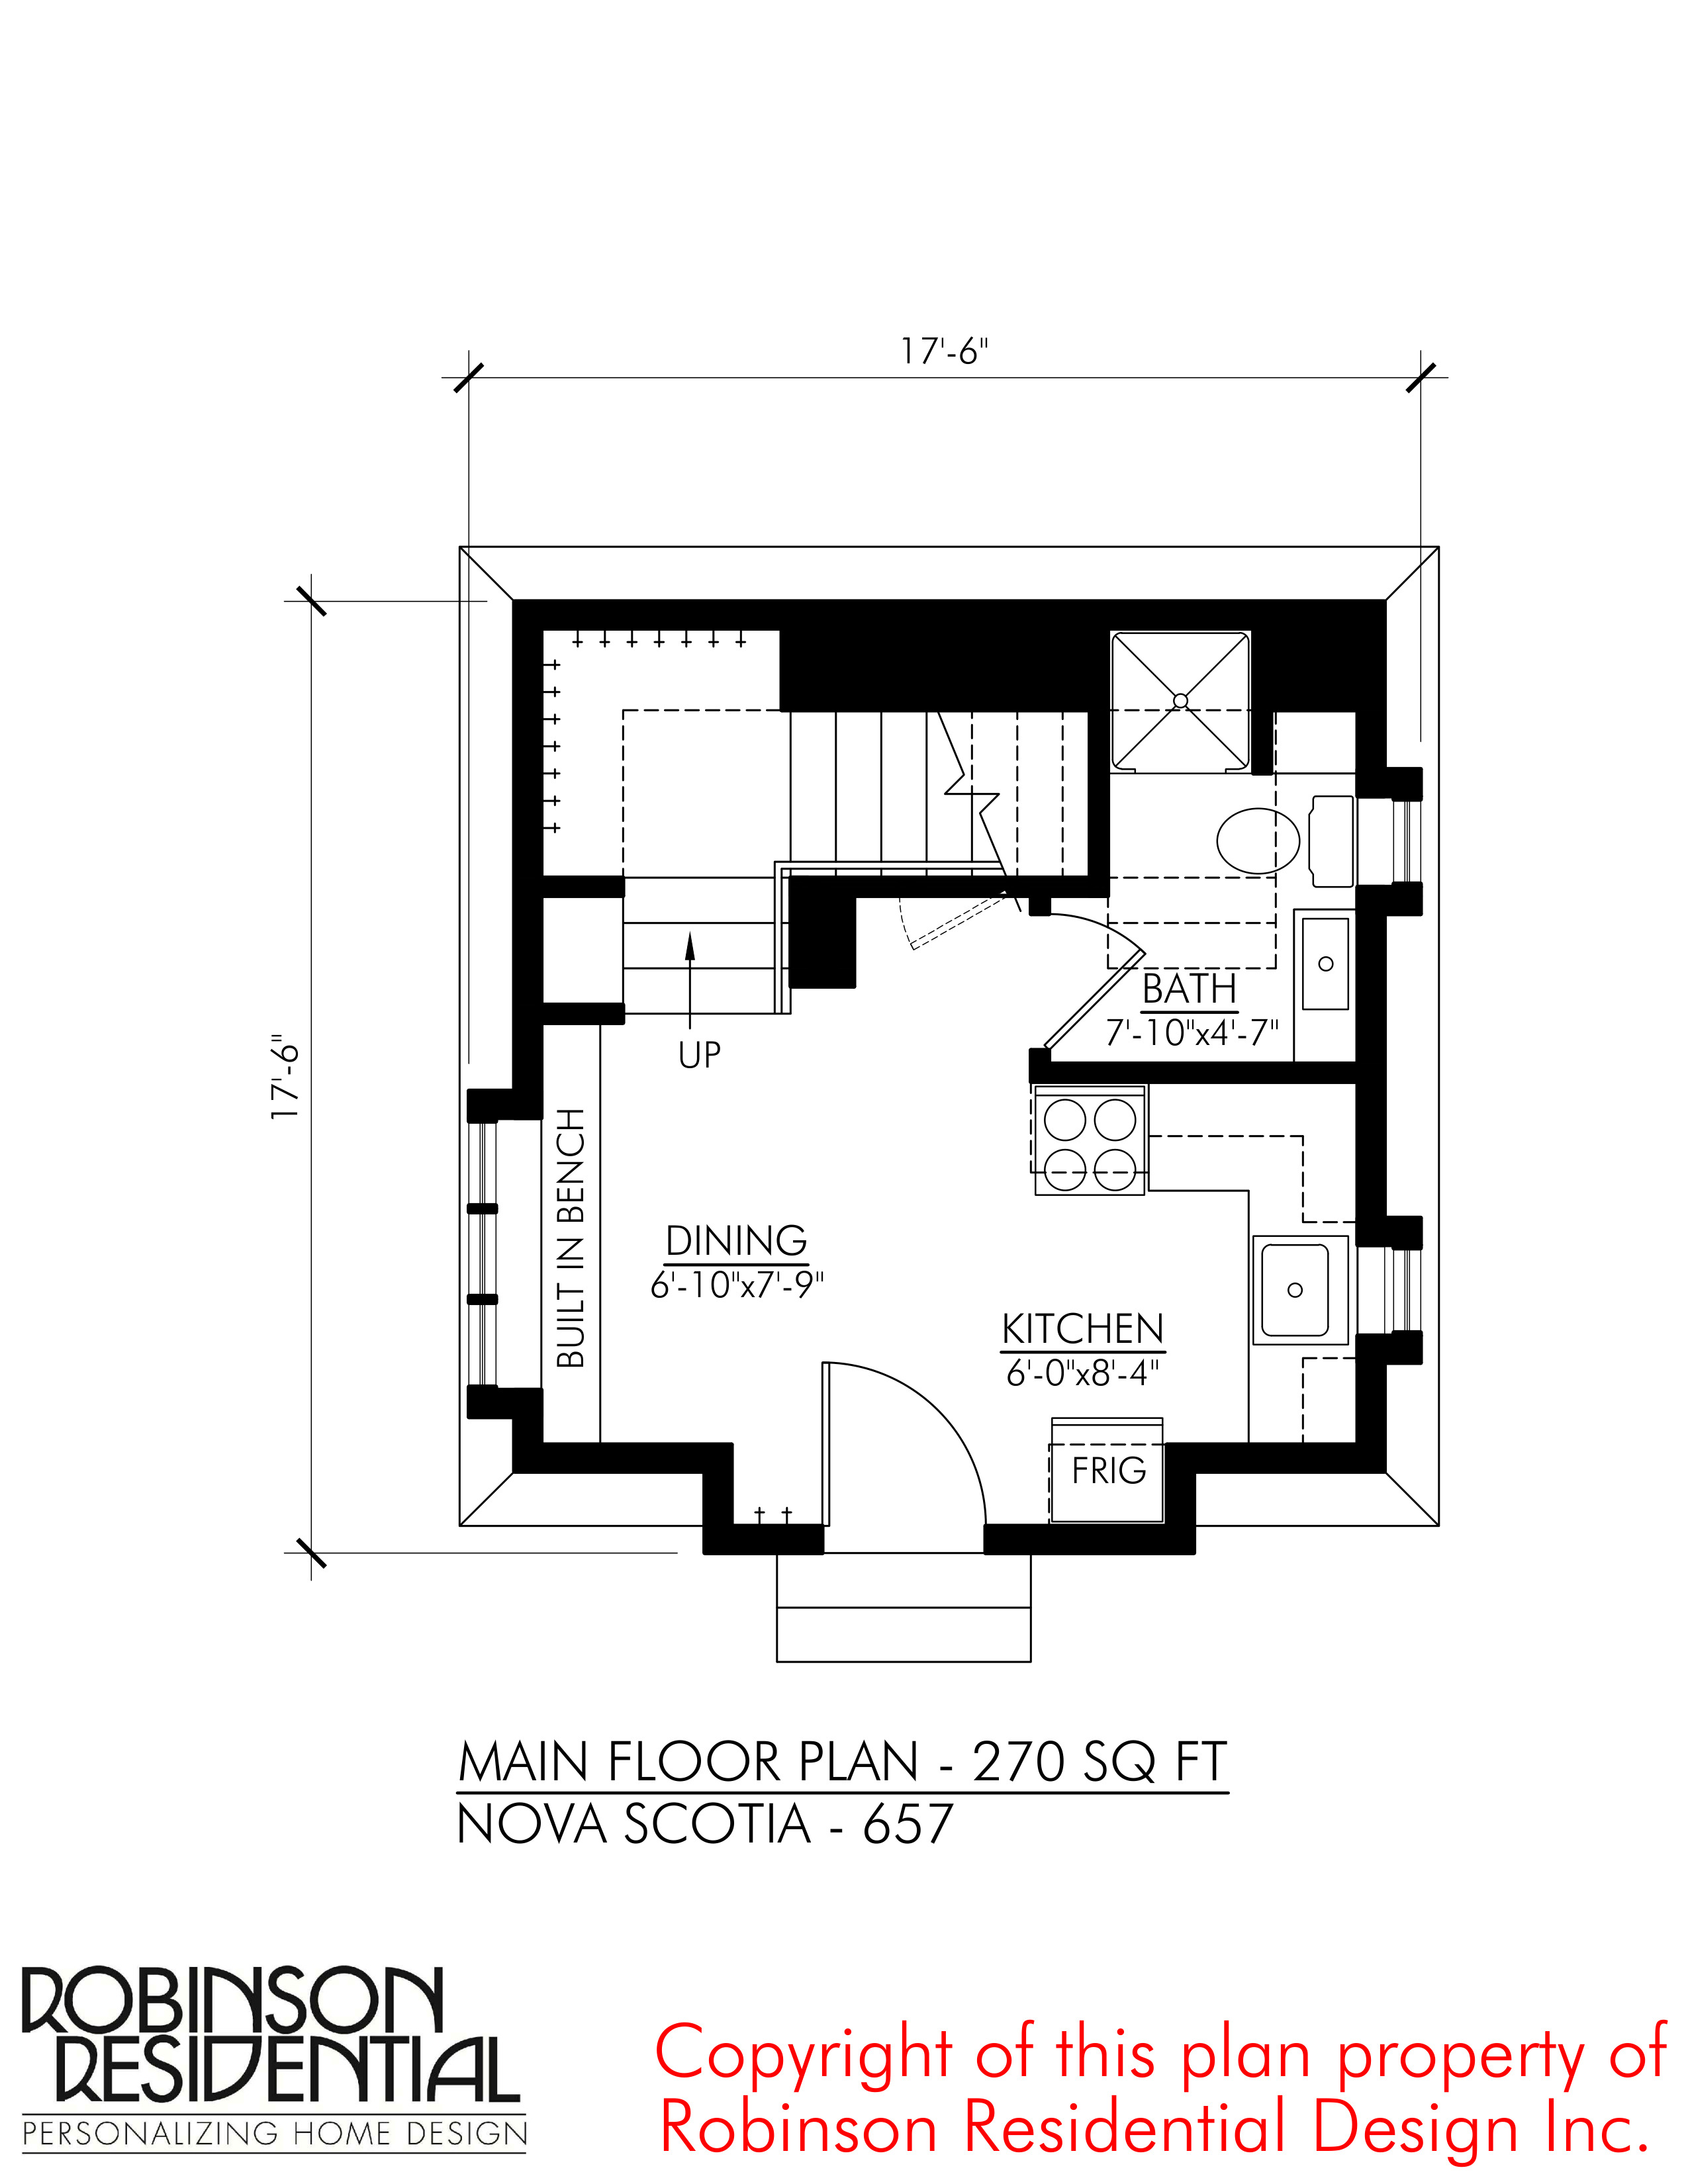 SMALL HOME PLANS NOVA SCOTIA 657 01 MAIN FLOOR PLAN